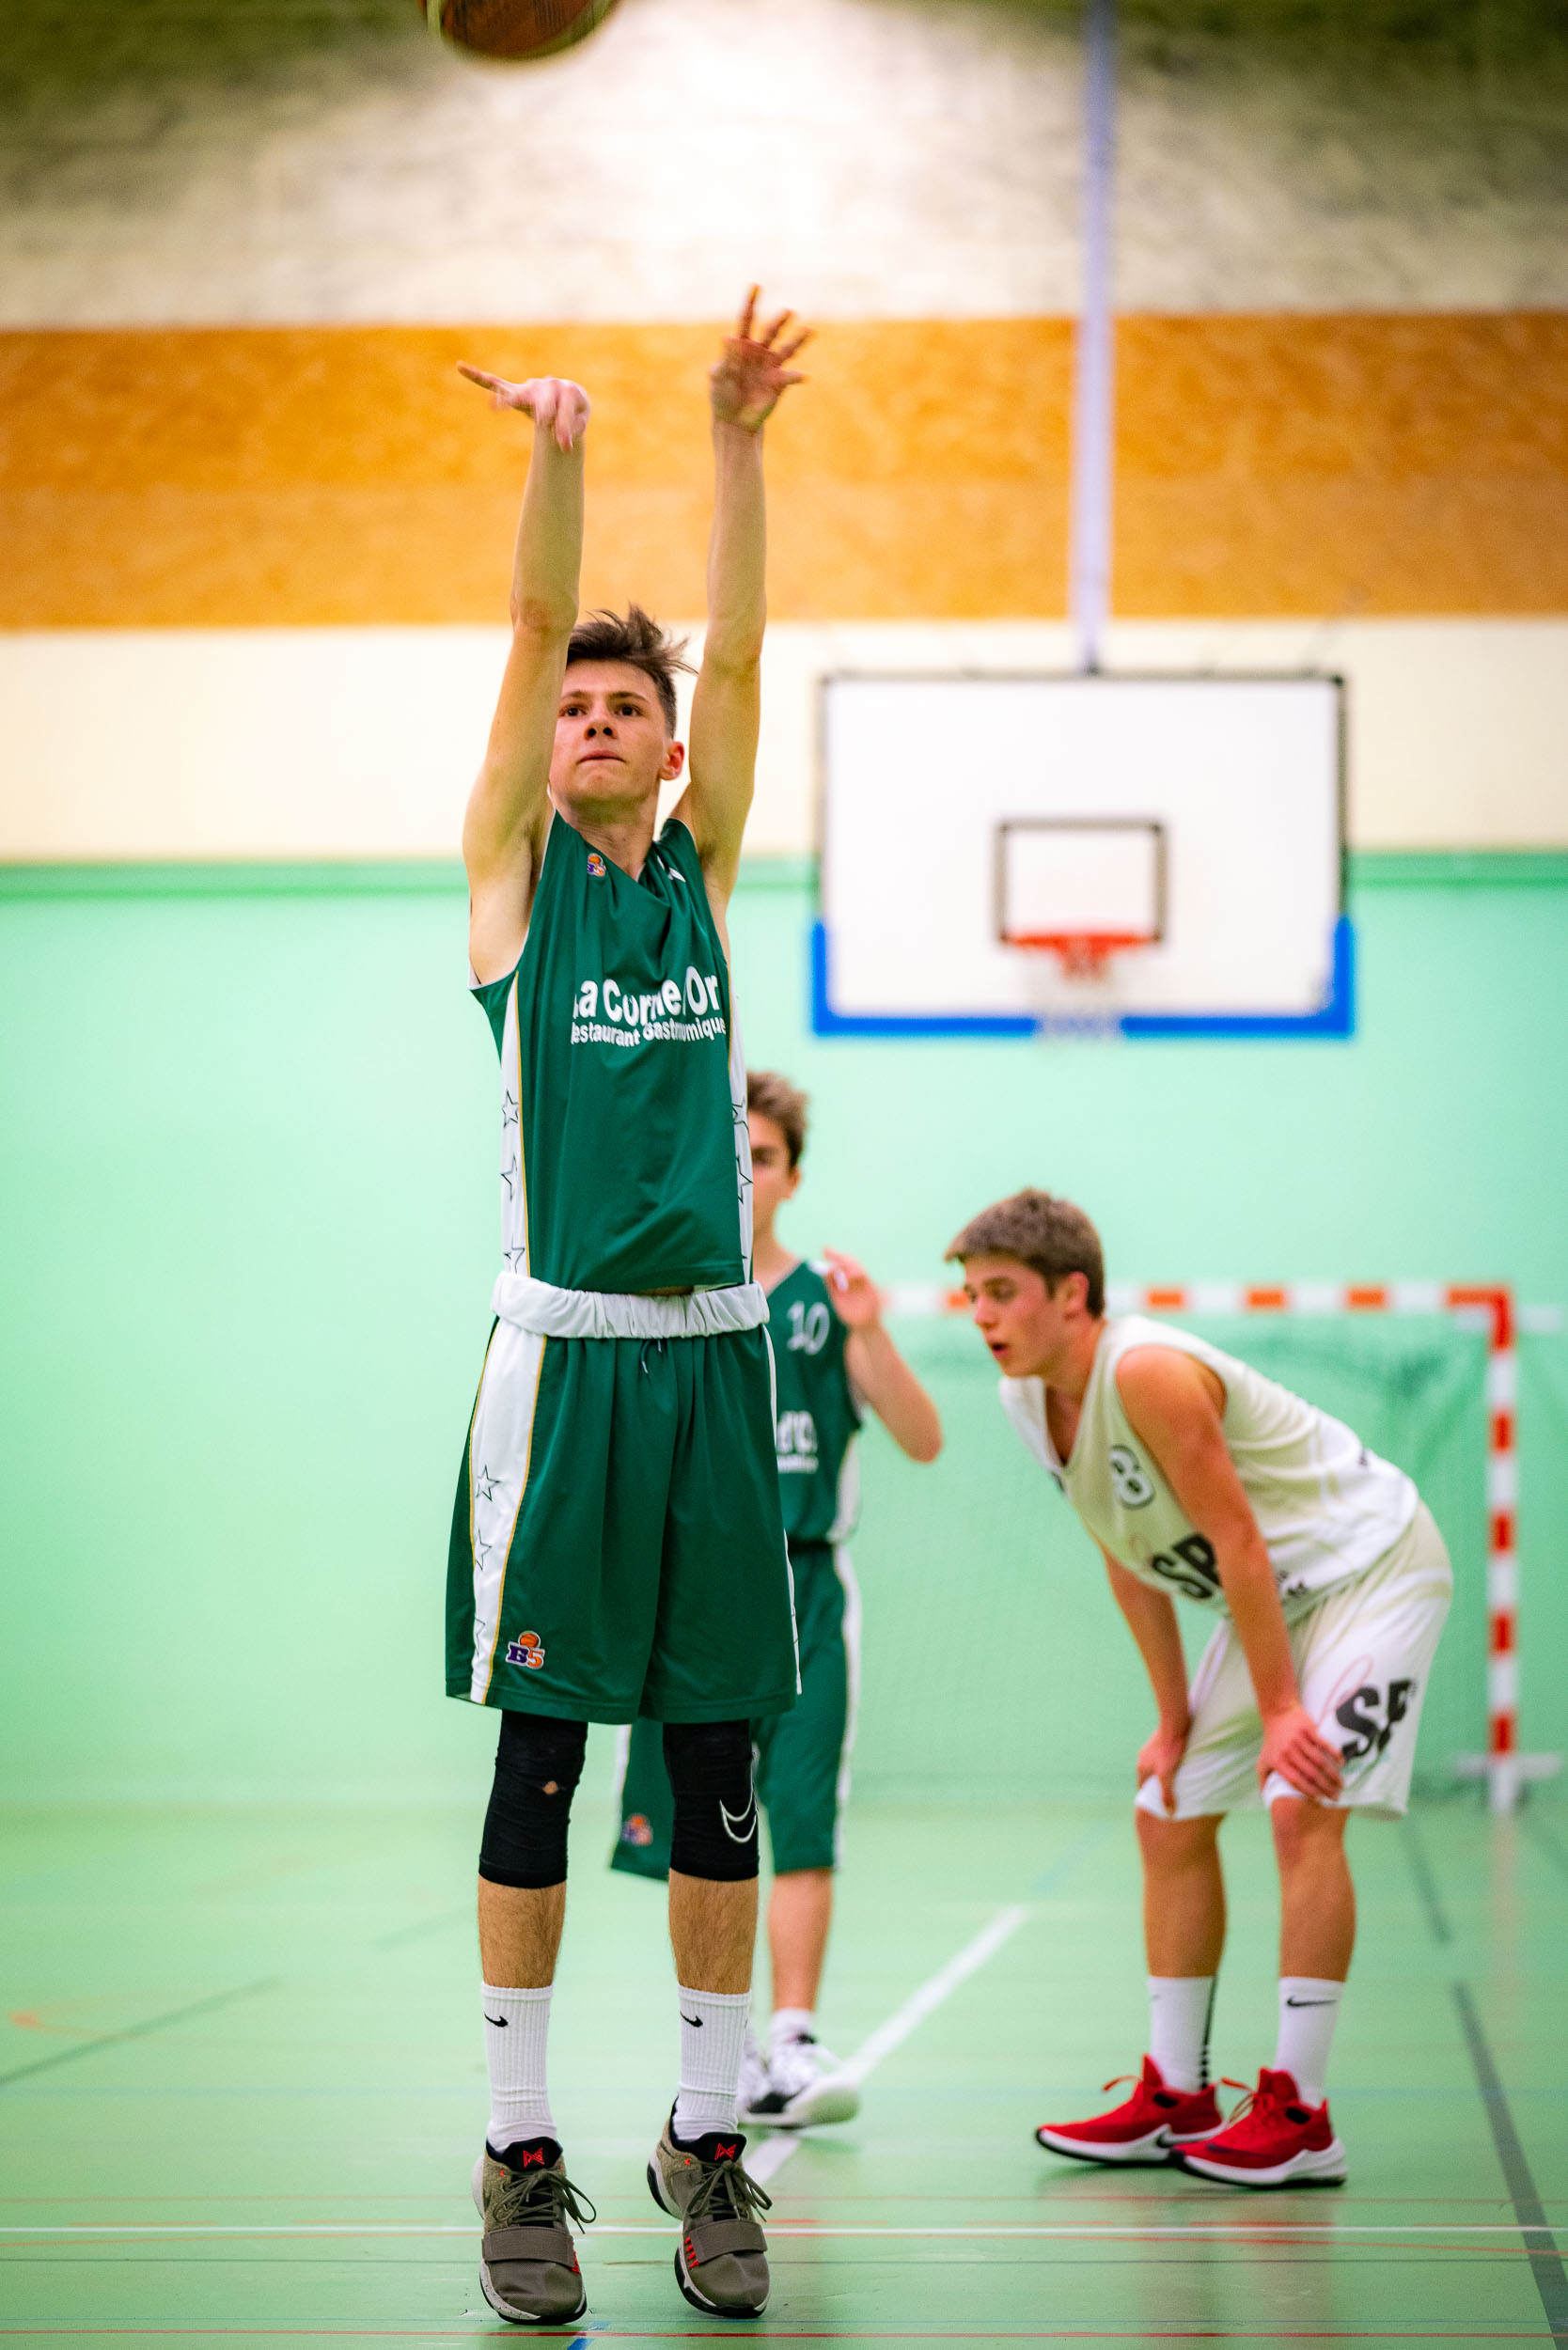 Basketball match covered by an event photographer